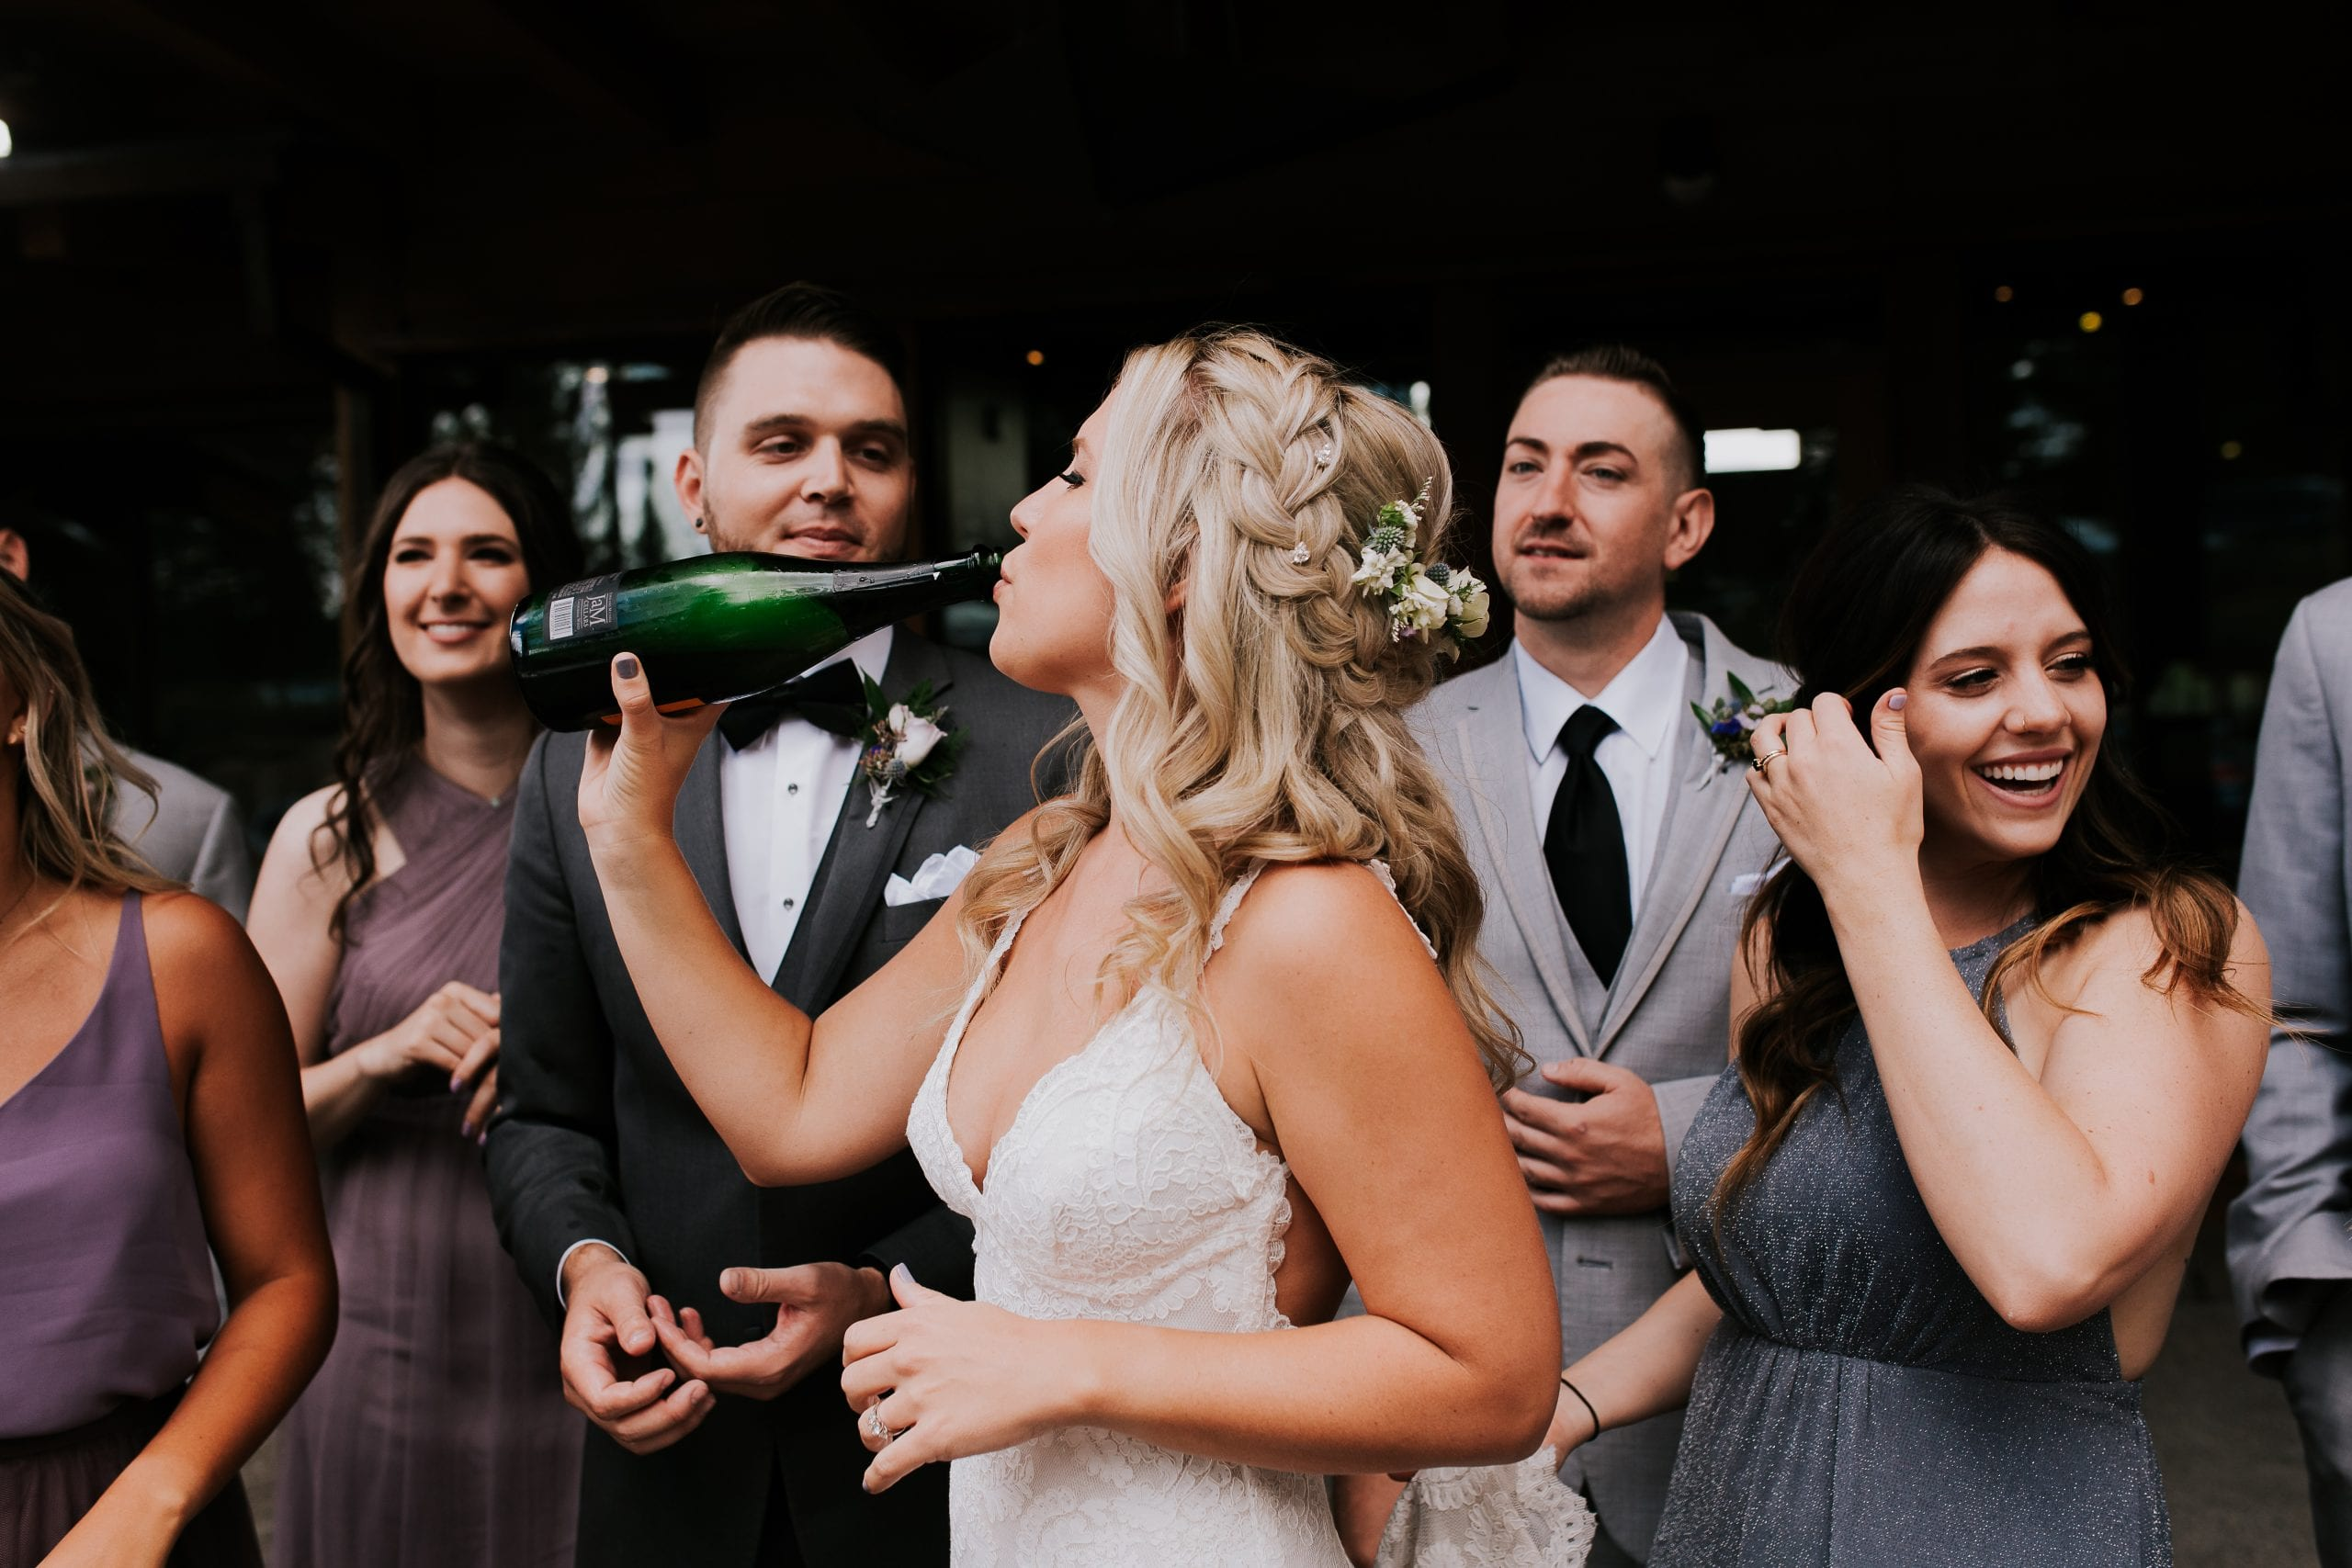 bride drinks champagne at wedding reception